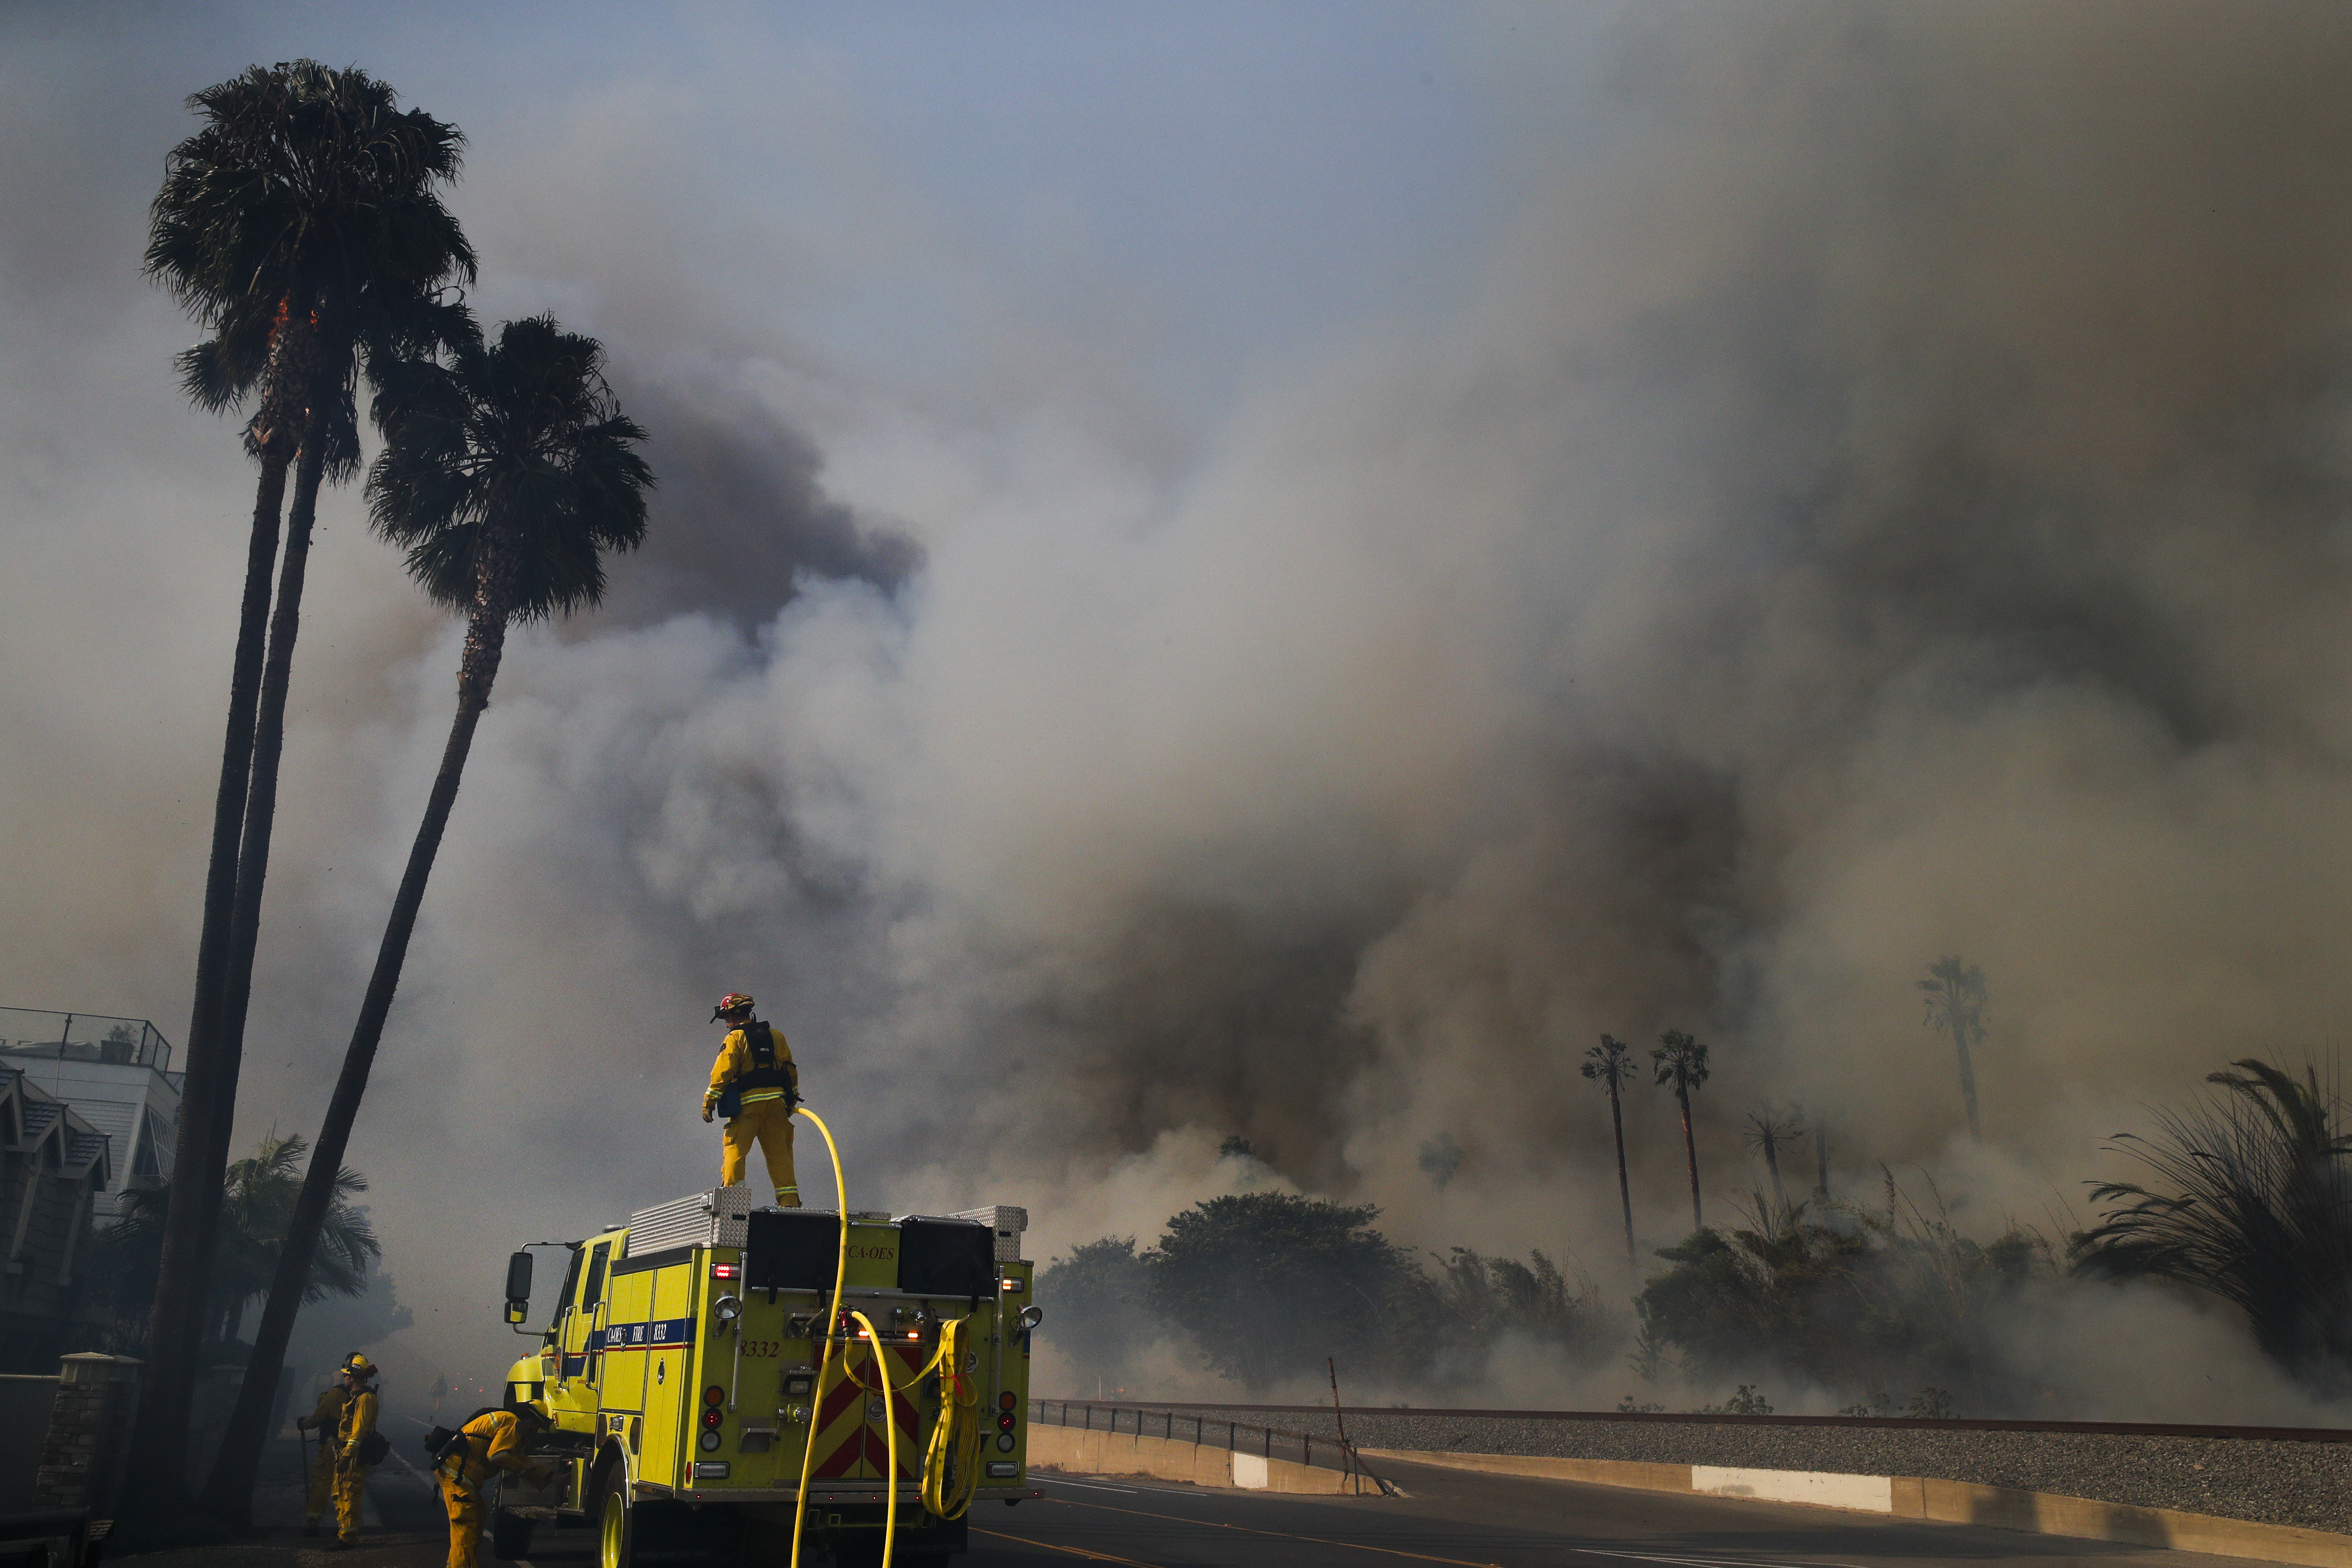 Firefighters battle a wildfire as smoke rises from burning palm trees at Faria State Beach in Ventura, California, Dec. 7, 2017.